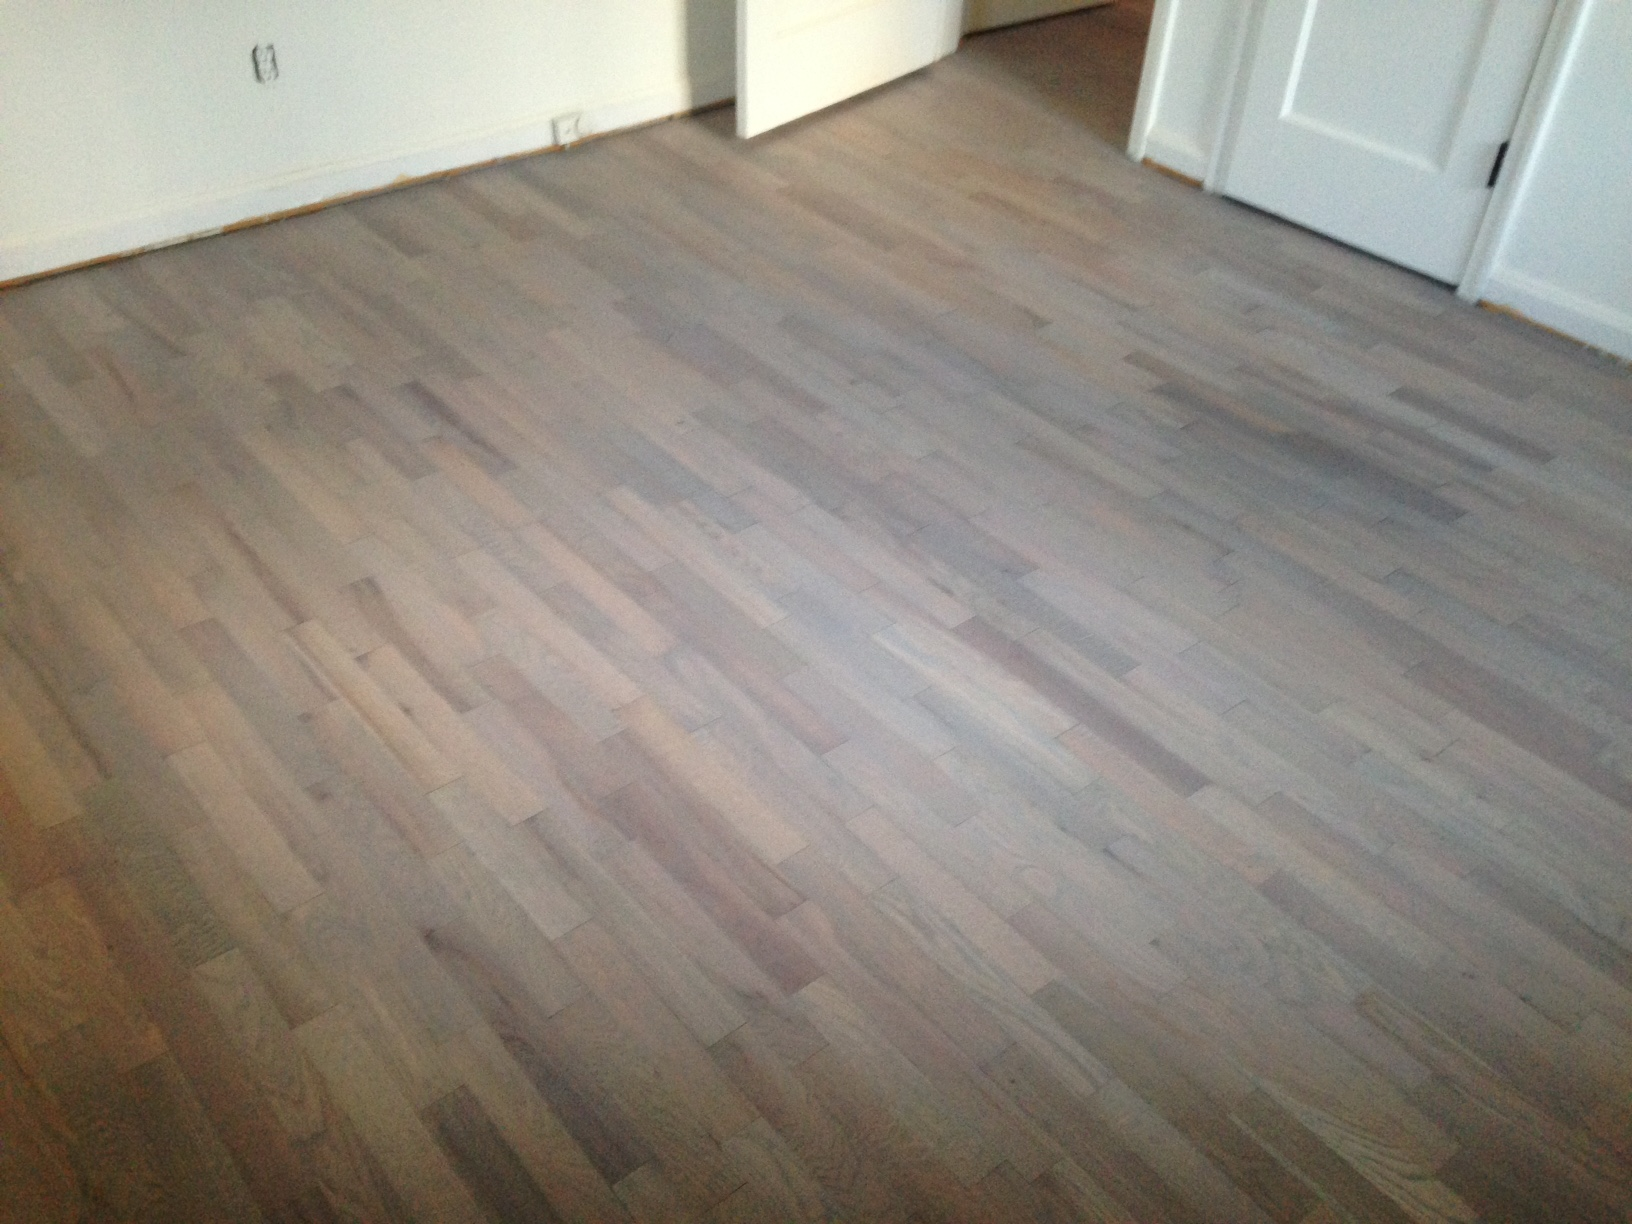 Refinishing Wood Floors For A Beach House Look Dan 39 S